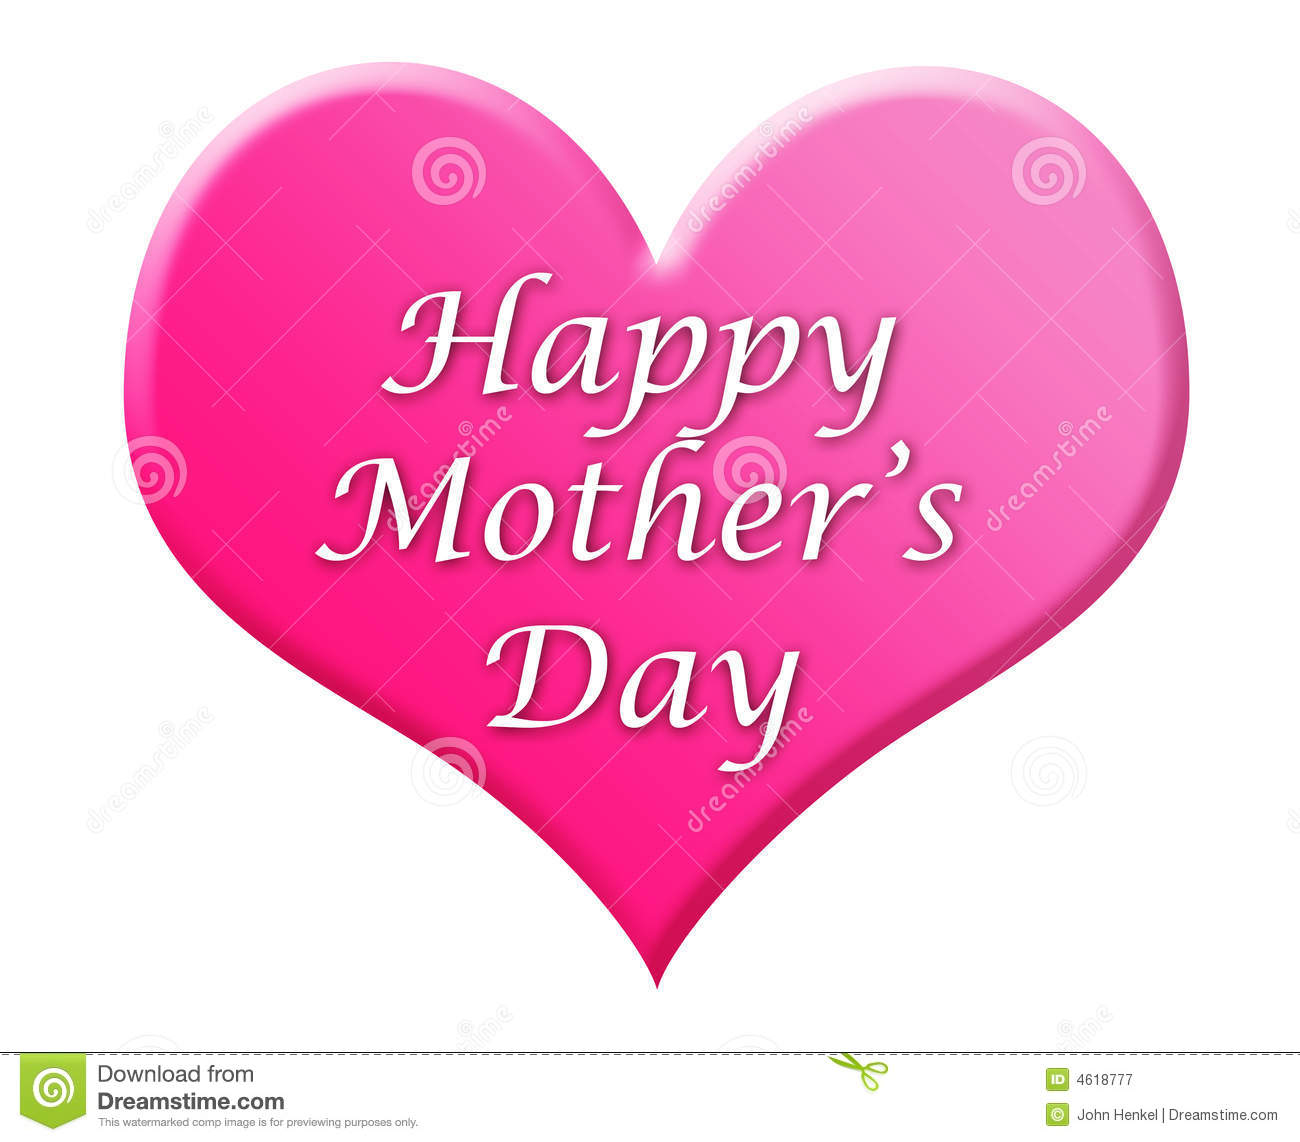 happy mother s day heart illustration stock illustration